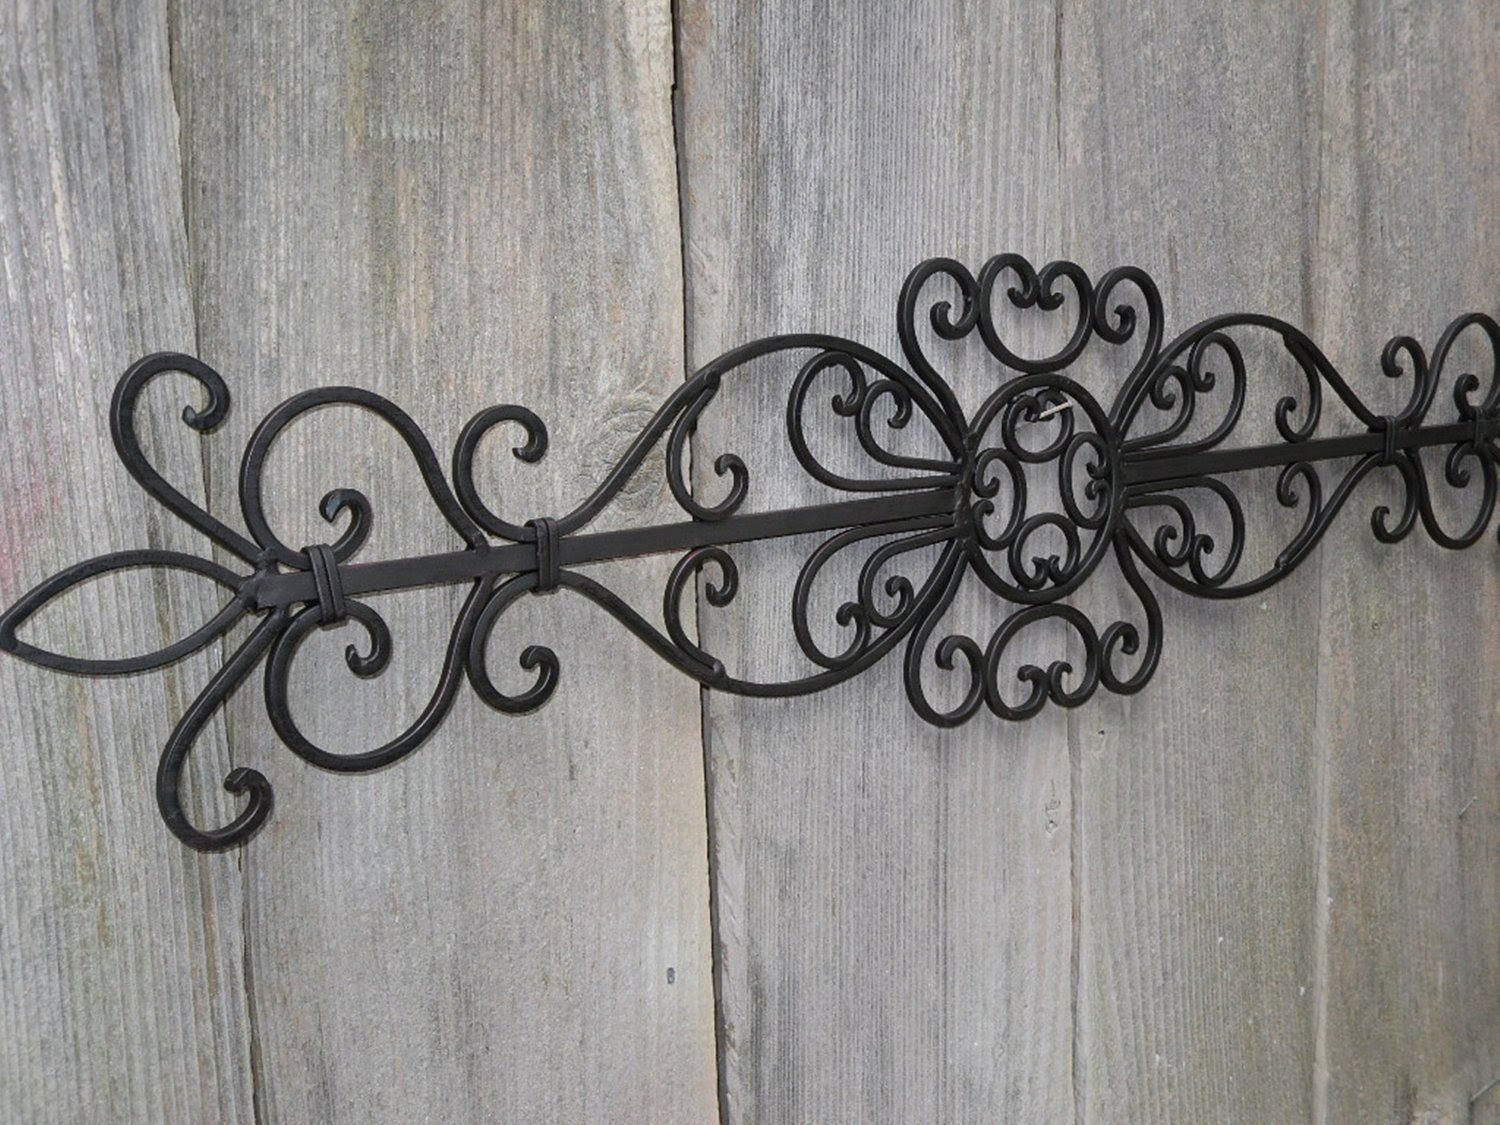 20 Best Decorative Outdoor Metal Wall Art Wall Art Ideas Outdoor Metal Wall Art Wrought Iron Wall Decor Iron Wall Decor